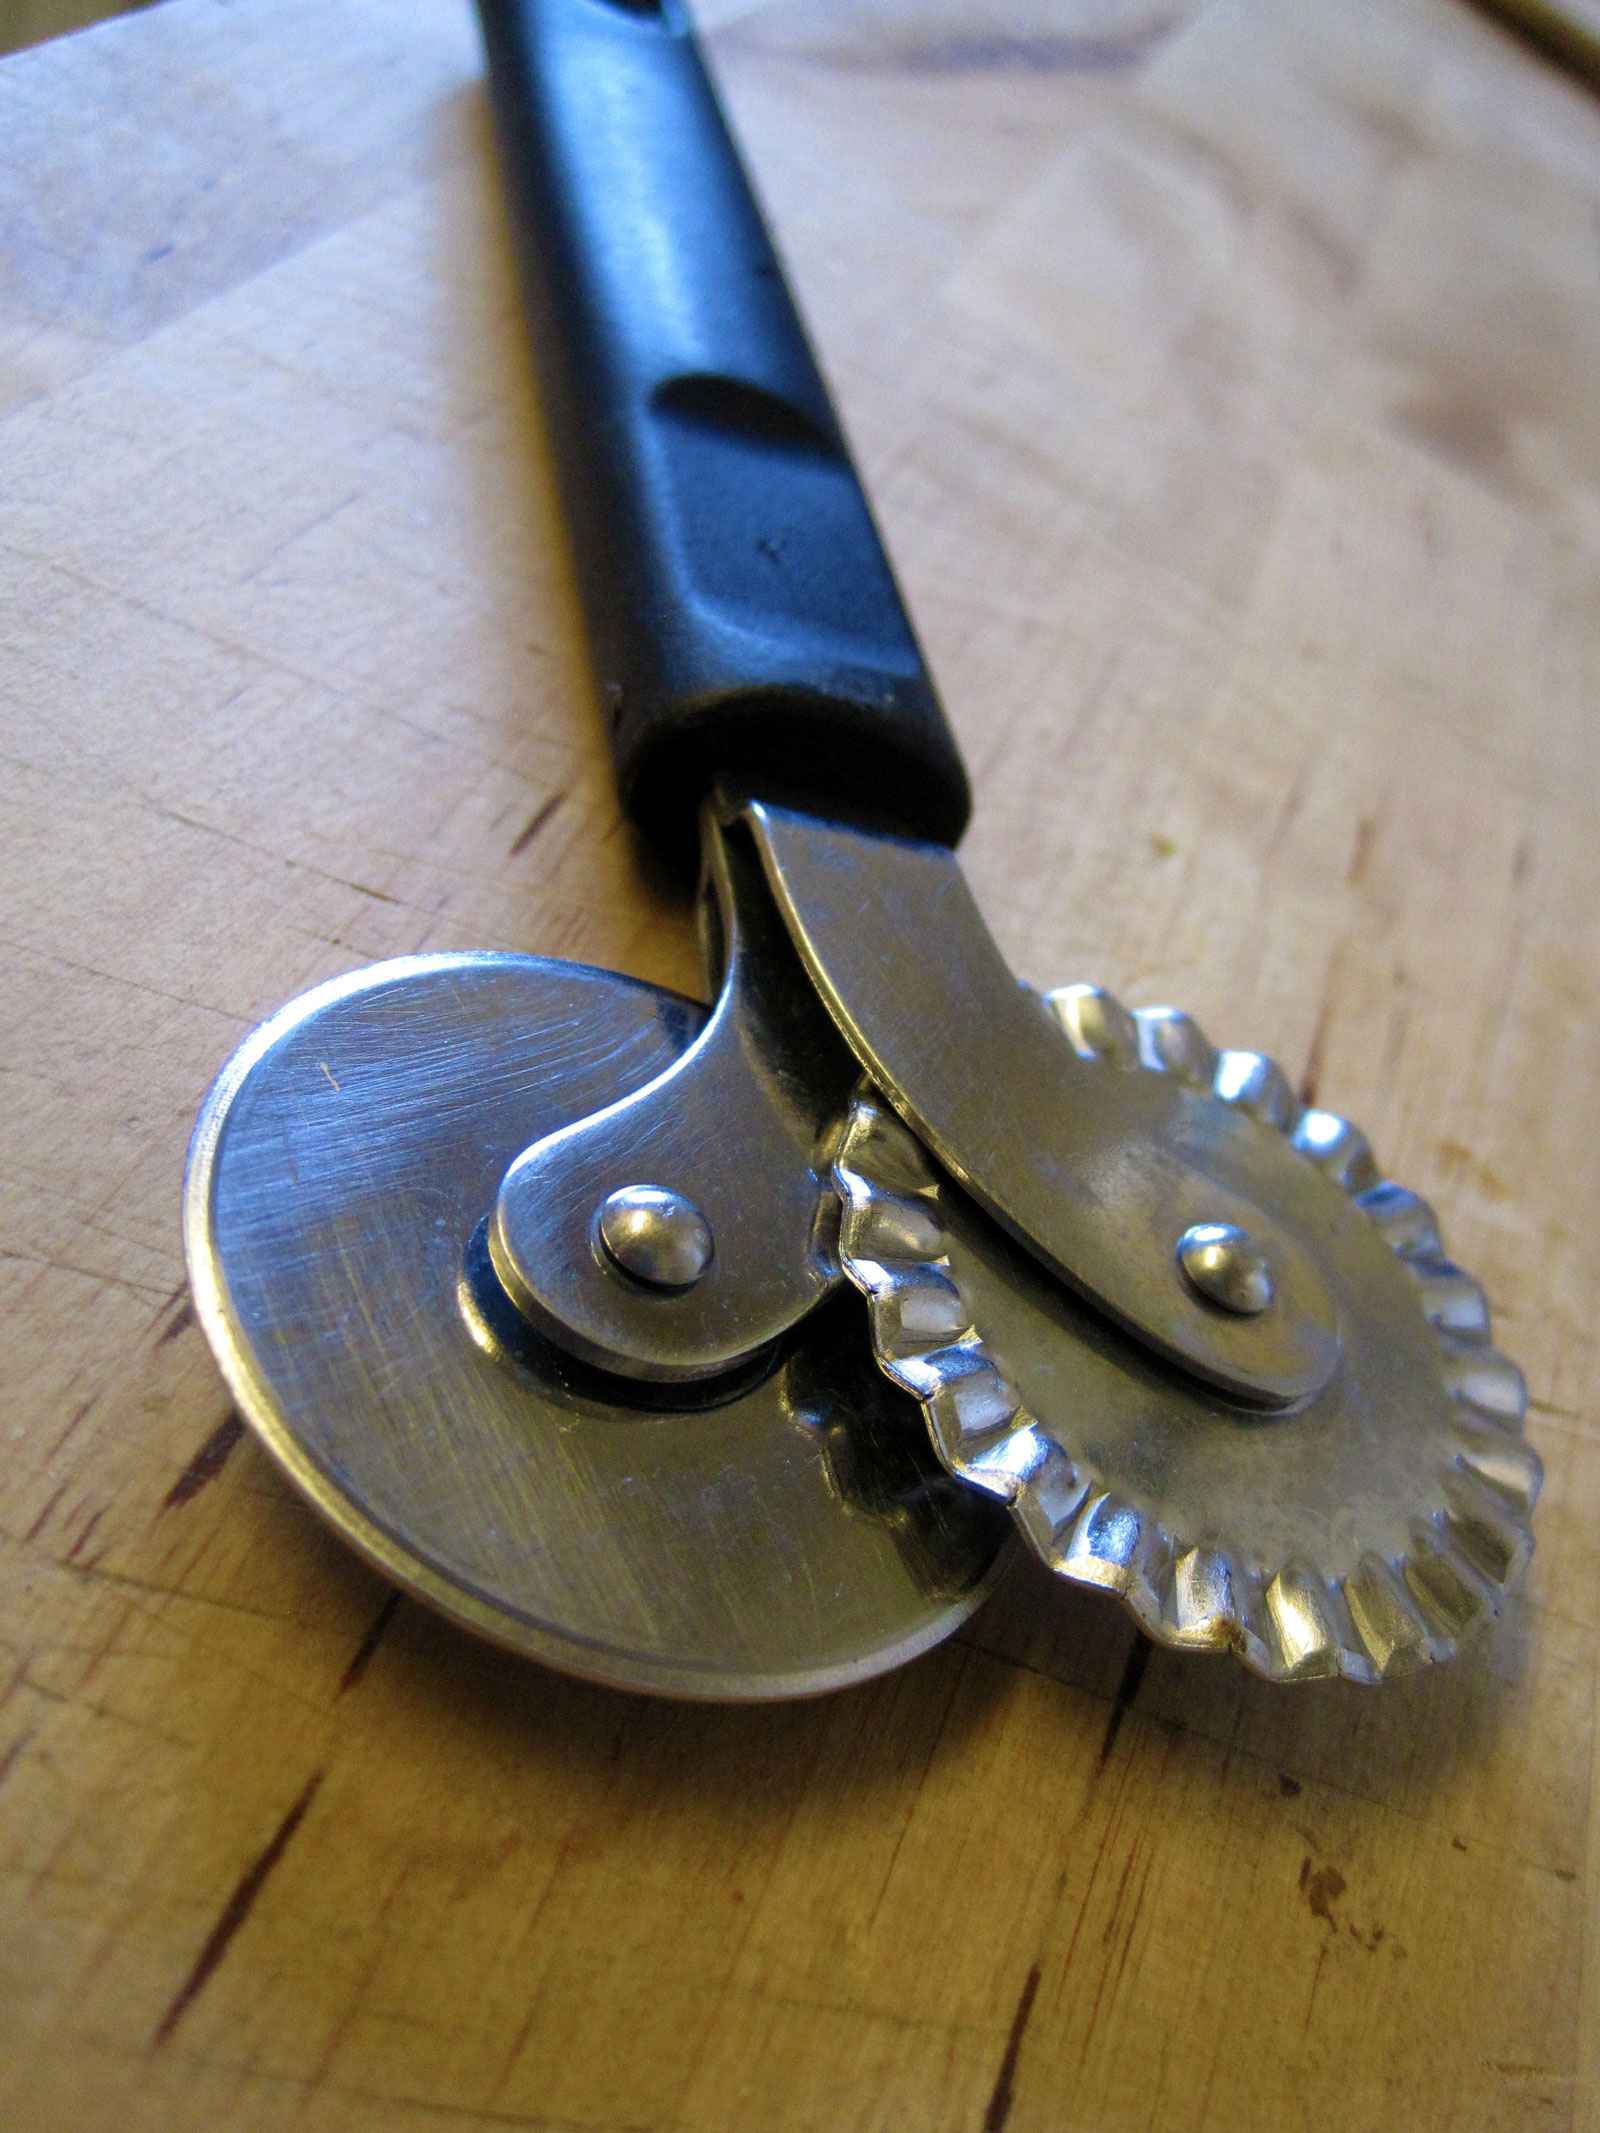 Dual pastry wheel / pastry jigger